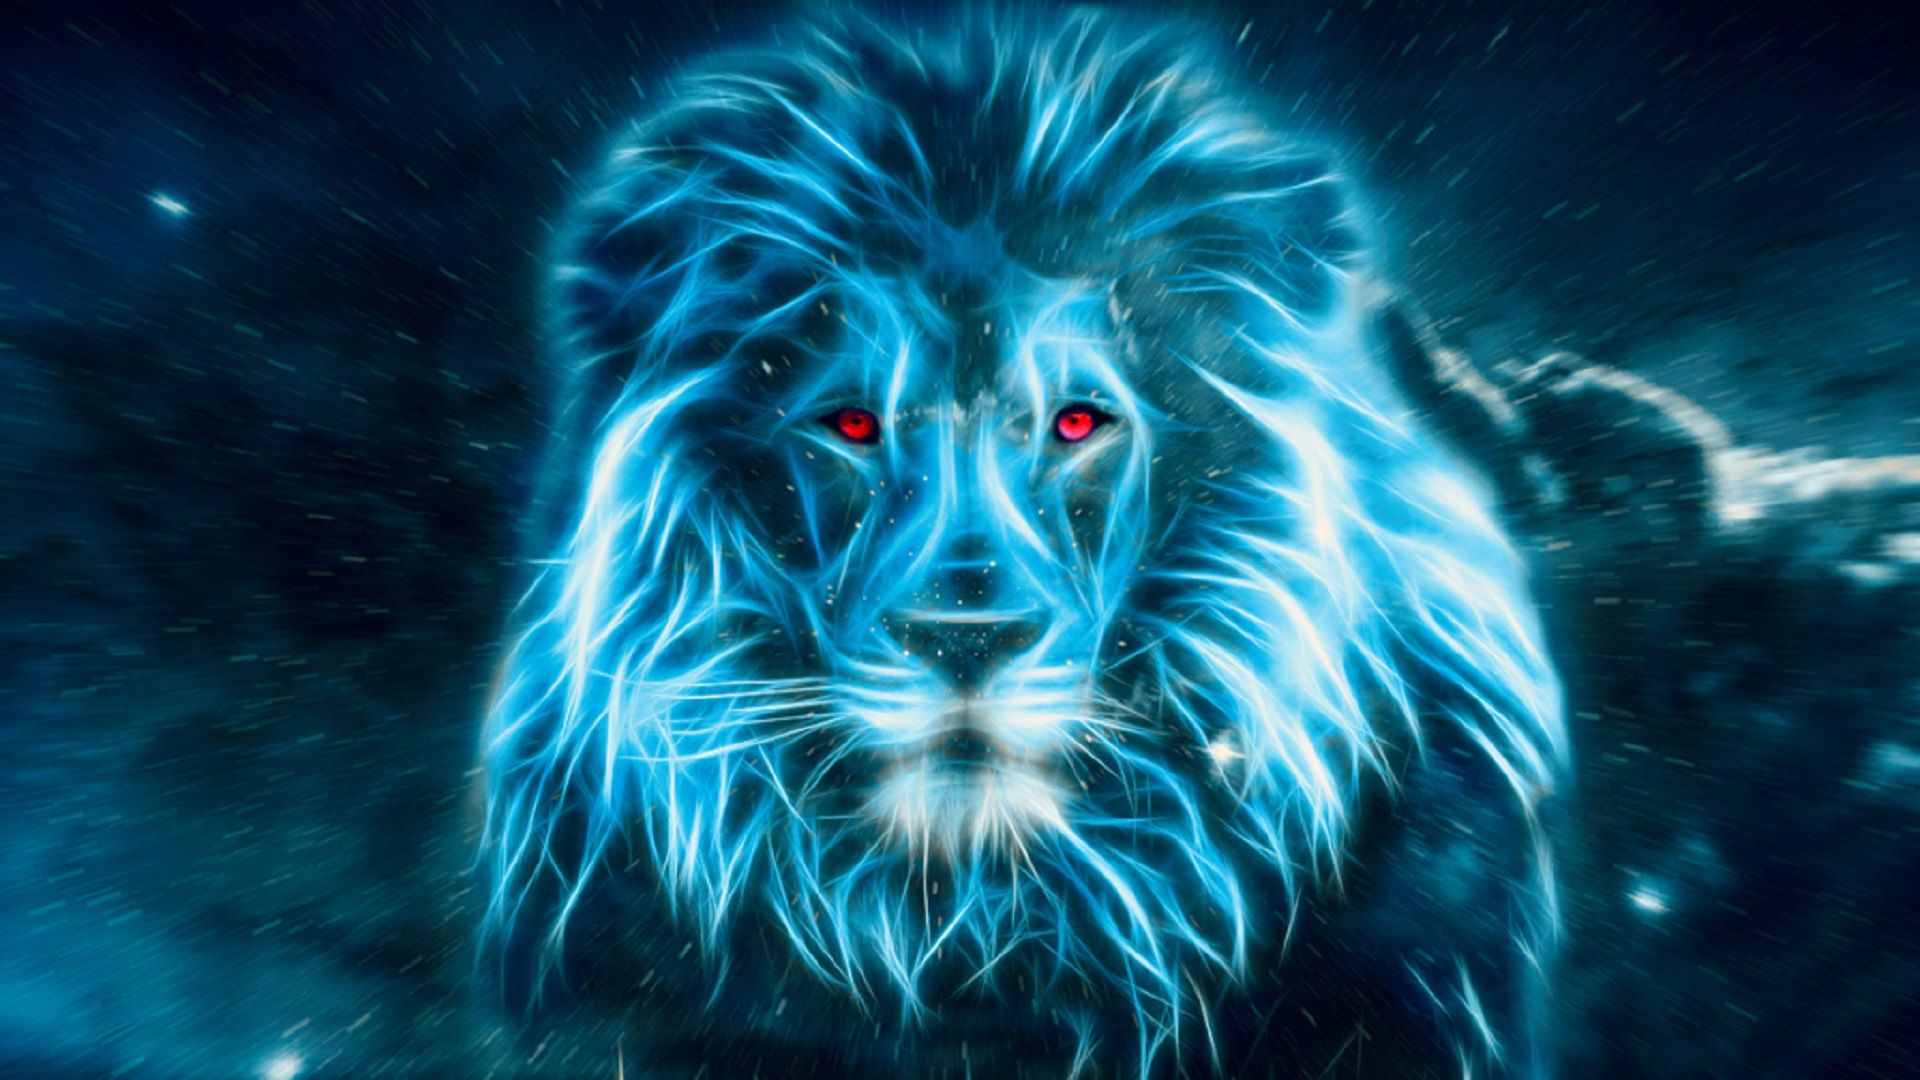 Lion In Blue Wallpapers 19201080 Music Indieartist Chicago